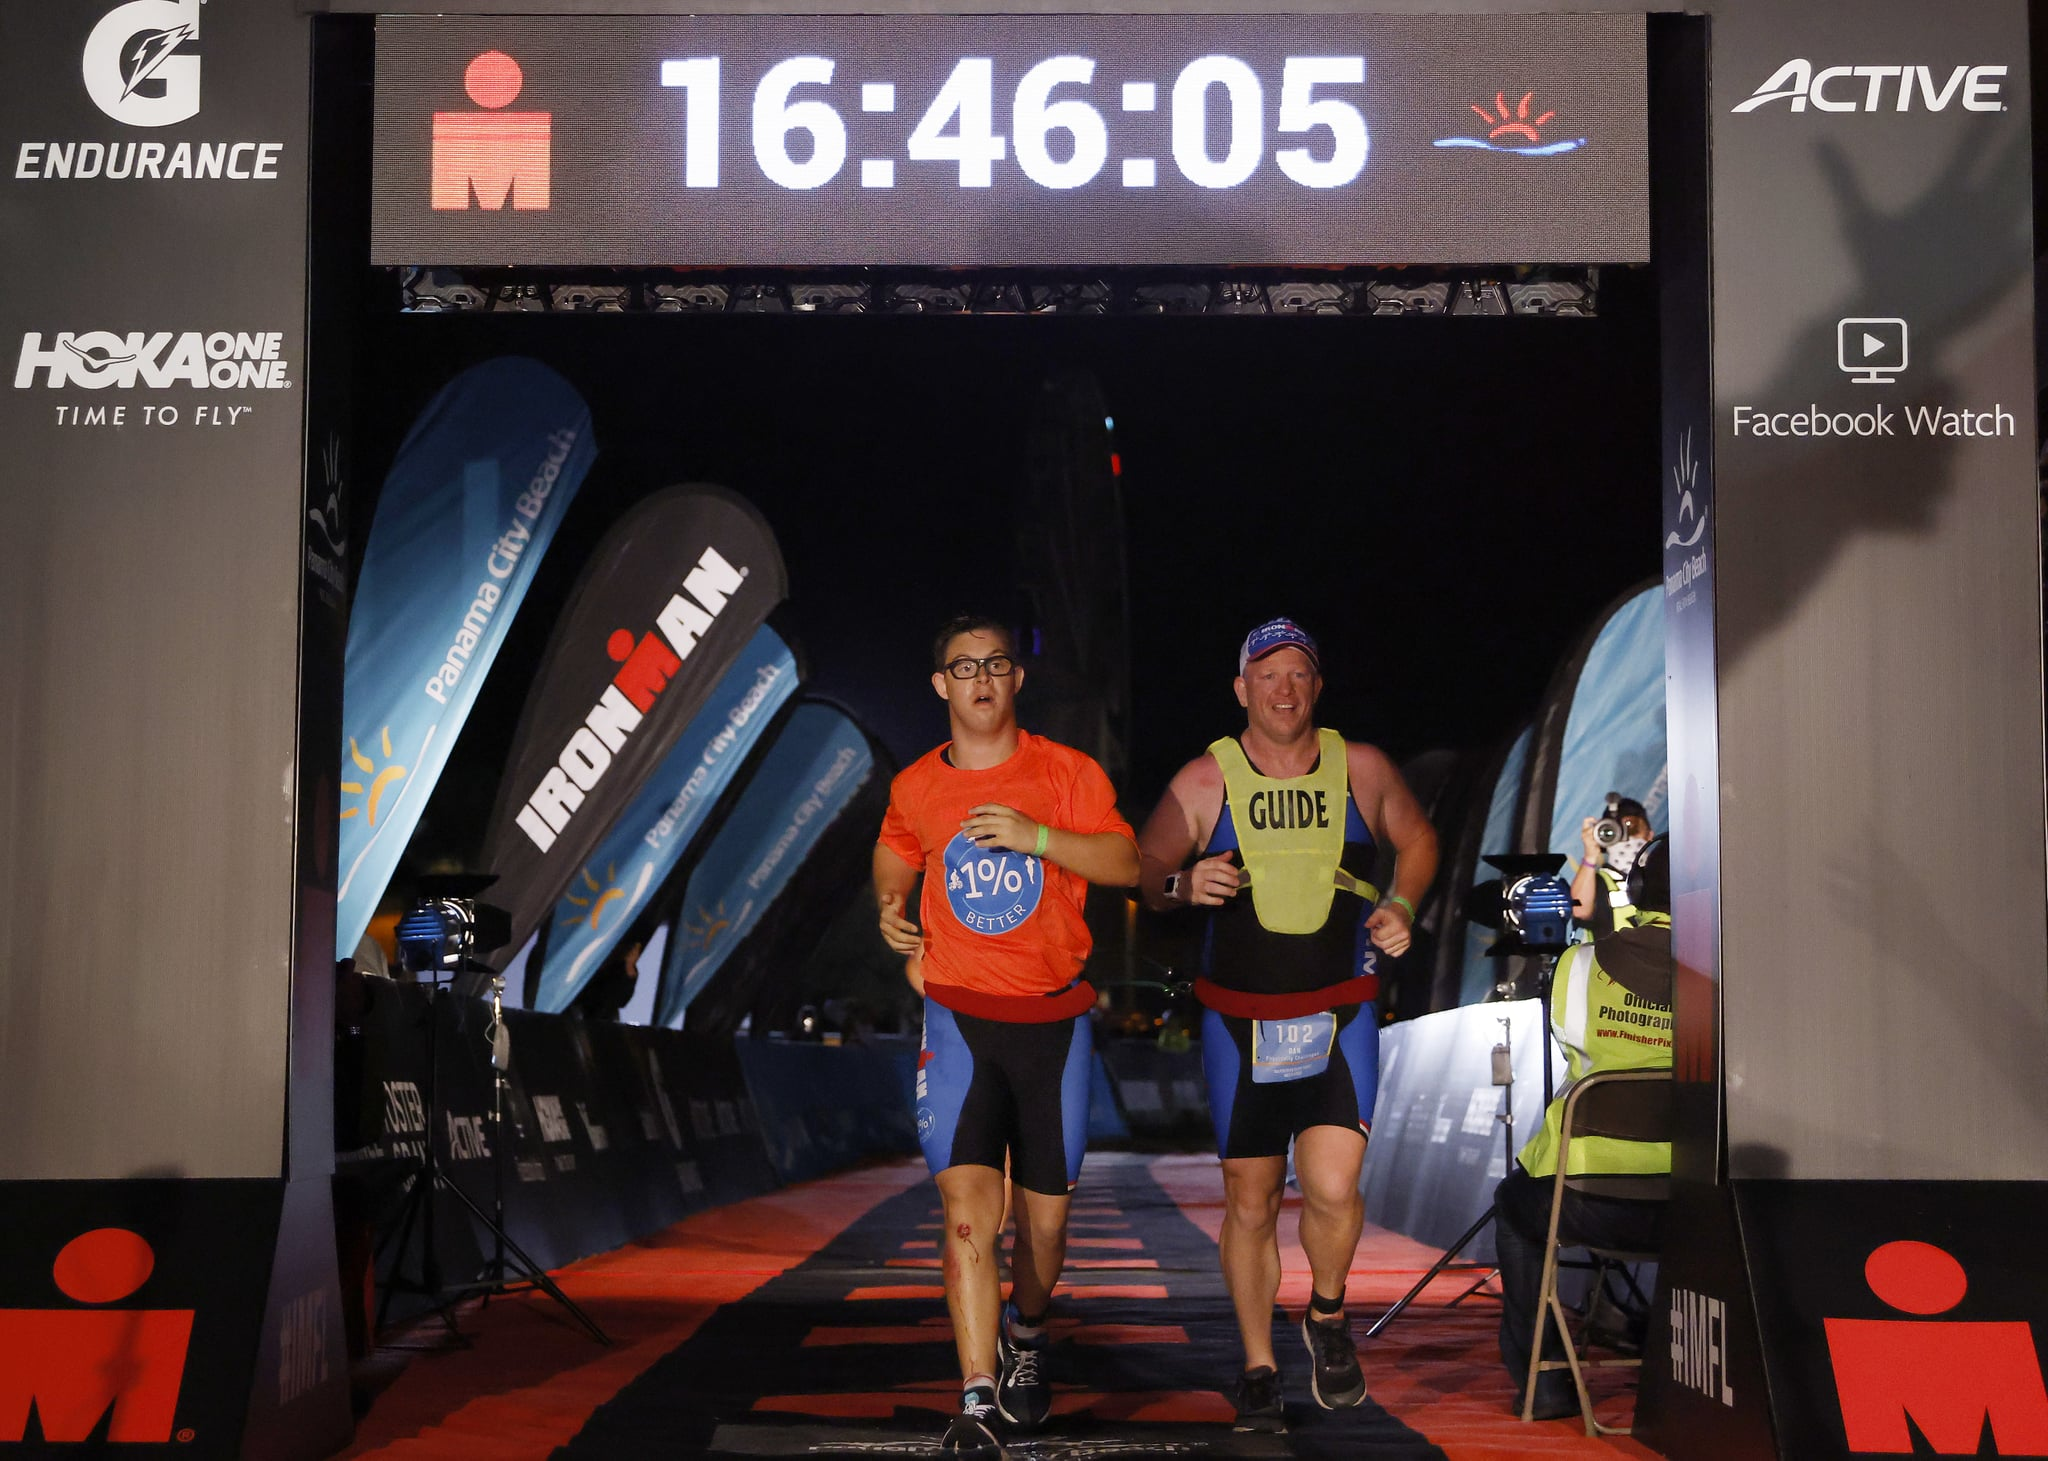 PANAMA CITY BEACH, FLORIDA - NOVEMBER 07: Chris Nikic and his guide Dan Grieb cross the finish line of IRONMAN Florida on November 07, 2020 in Panama City Beach, Florida. Chris Nikic became the first Ironman finisher with Down syndrome. (Photo by Michael Reaves/Getty Images for IRONMAN)